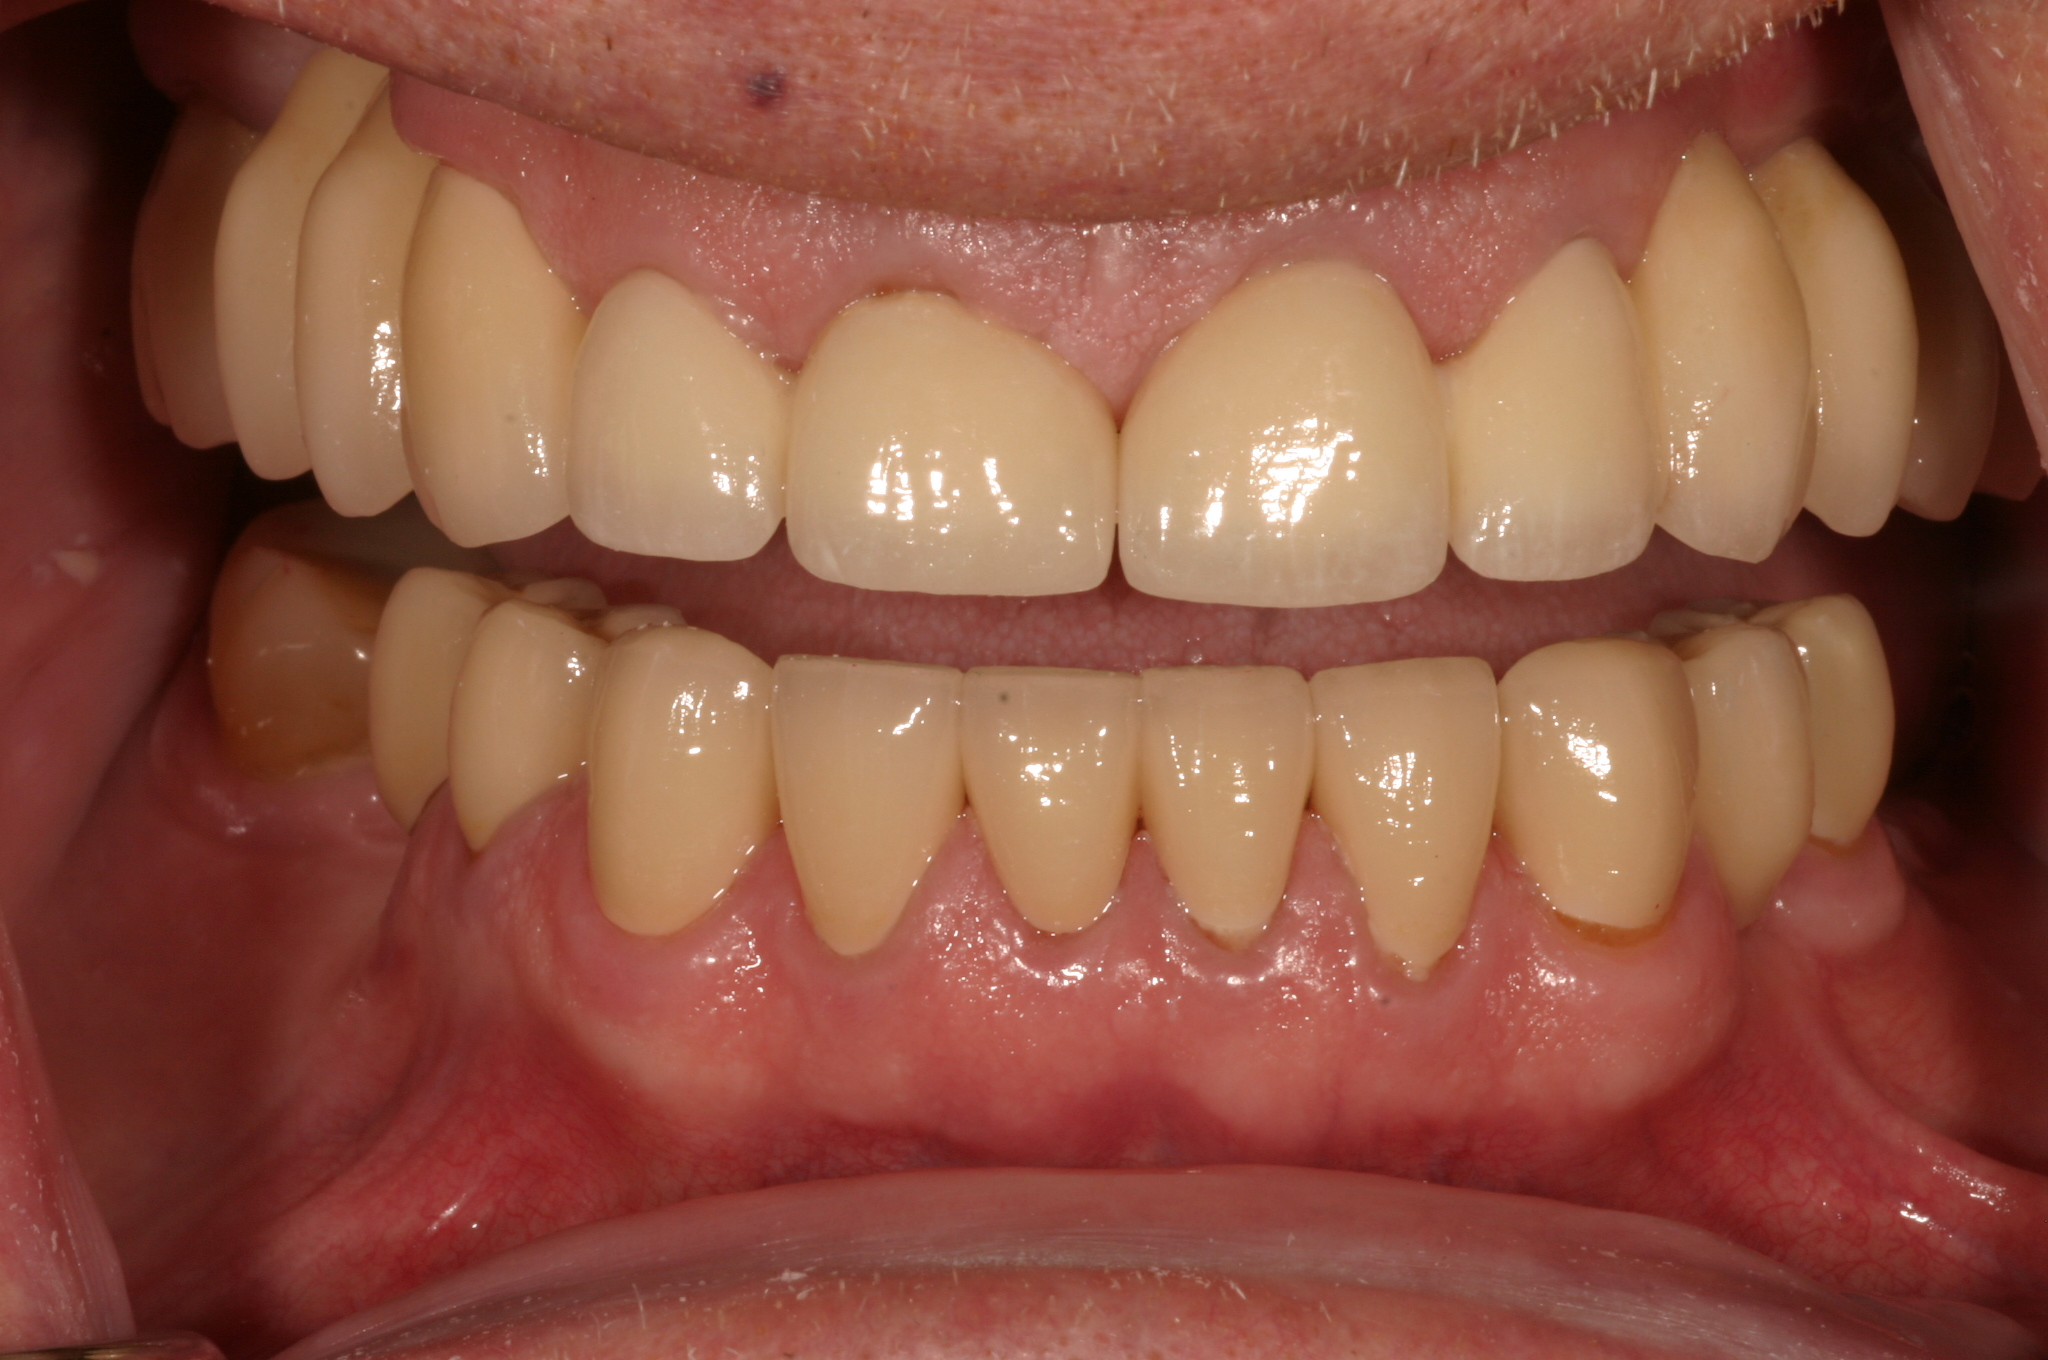 Before and After Dental Photos - New Oxford - Dentistry on the Square